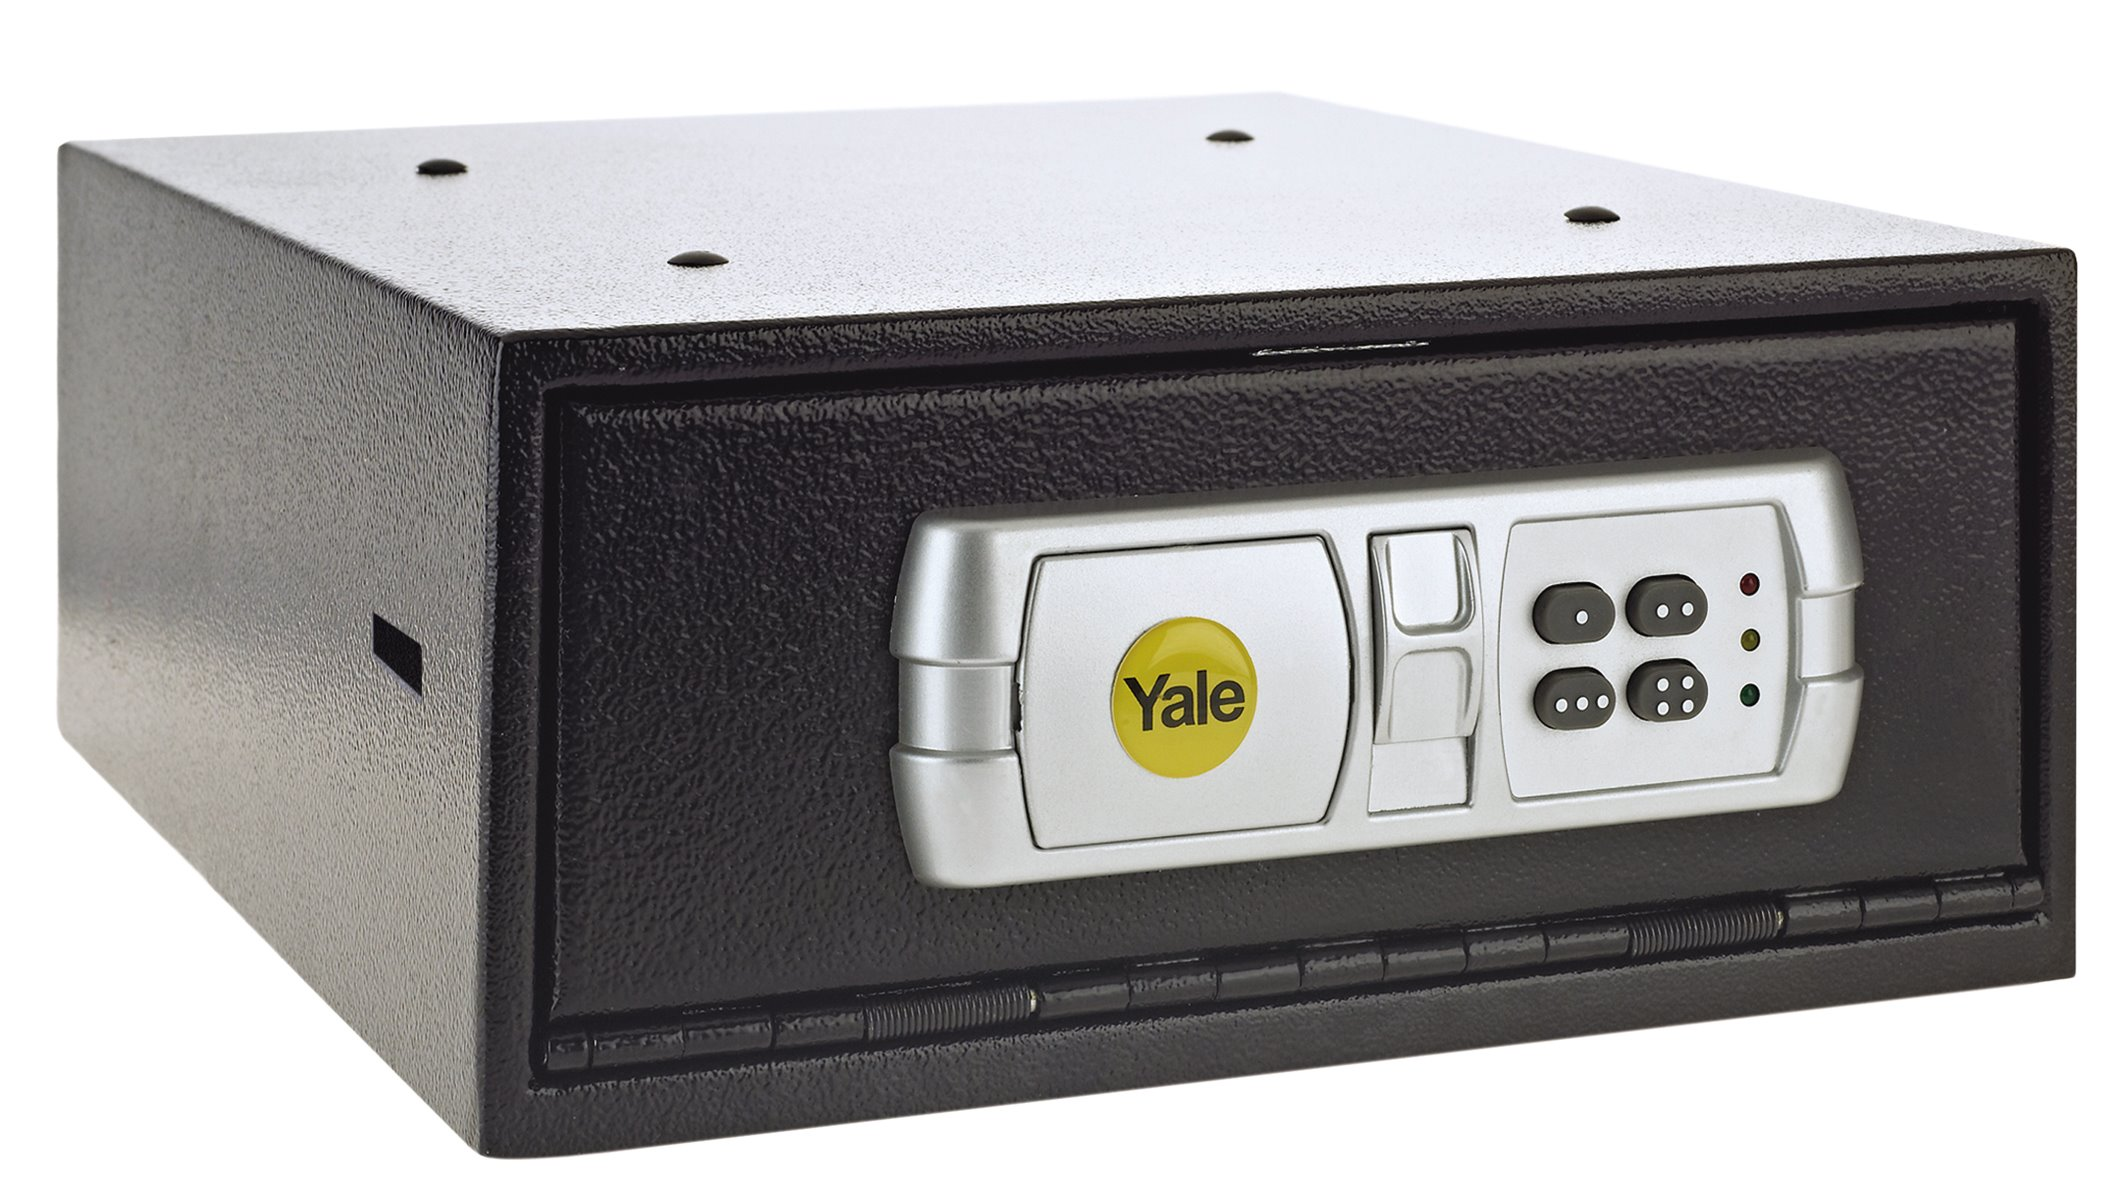 YAV/108/DB1 - Tablet safe